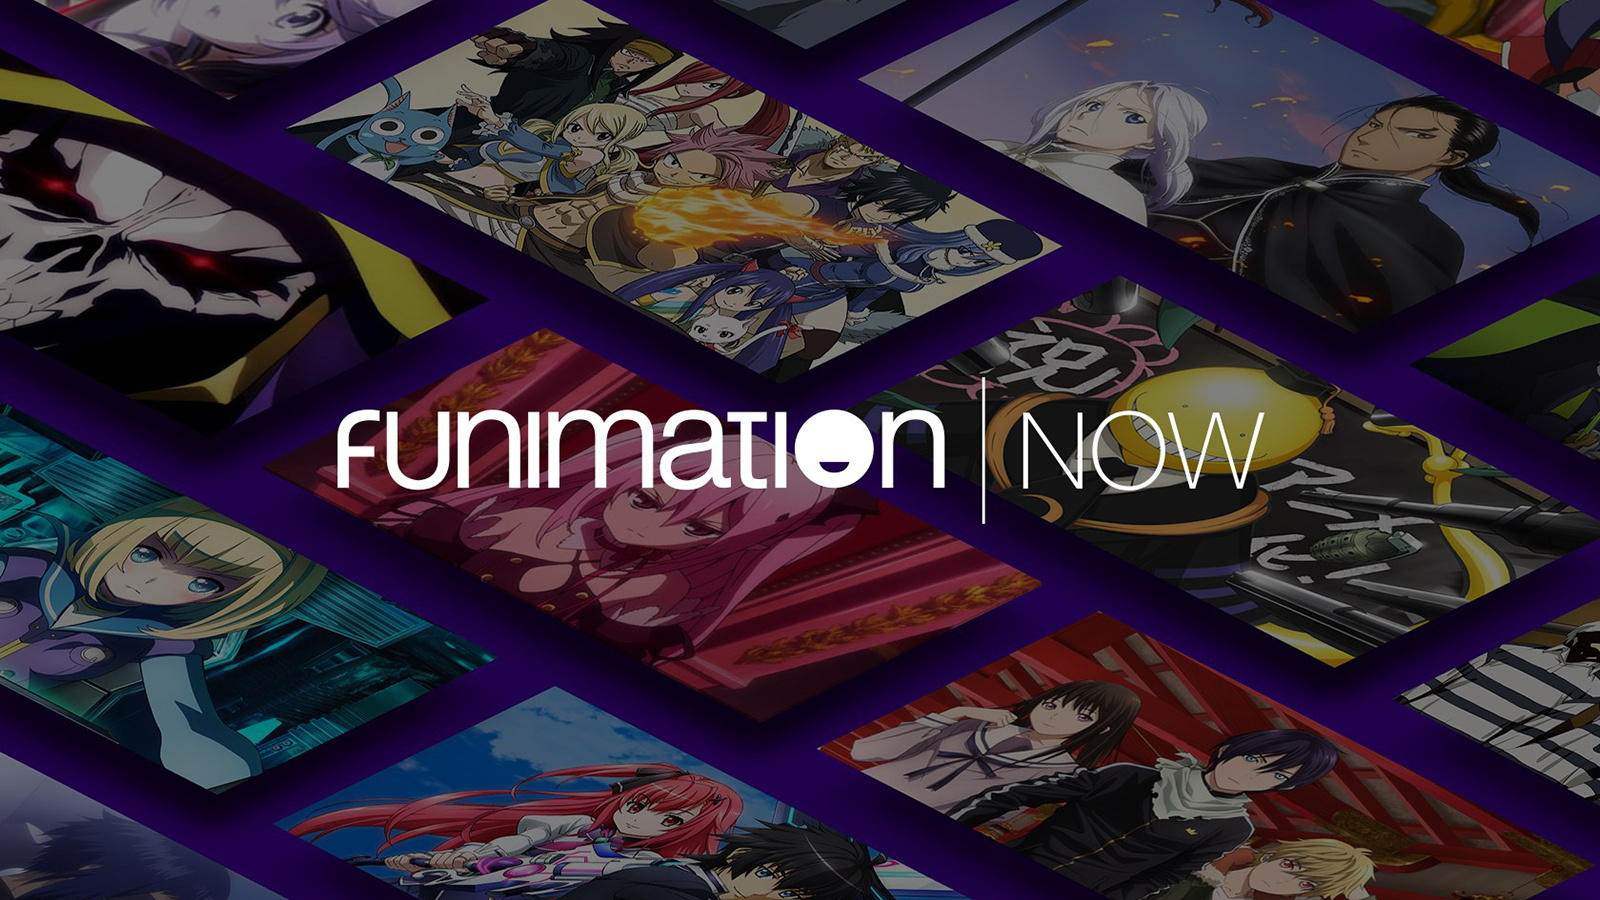 Hulu Partners with Funimation to Offer More Anime Content